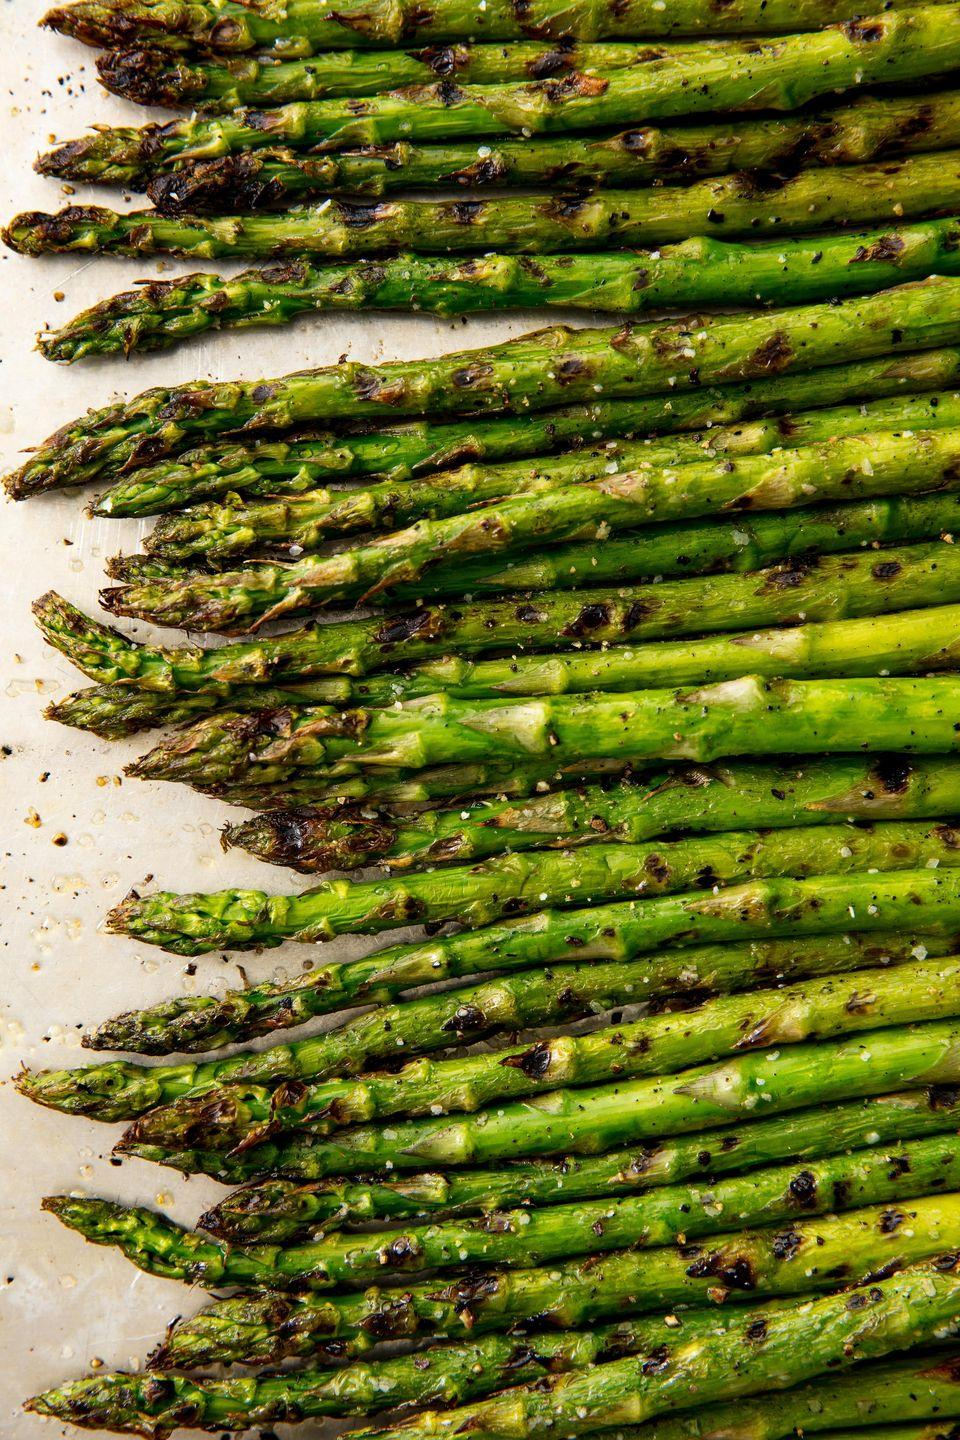 """<p>Fire up the grill!</p><p>Get the recipe from <a href=""""https://www.delish.com/cooking/recipe-ideas/recipes/a58383/best-grilled-asparagus-recipe/"""" rel=""""nofollow noopener"""" target=""""_blank"""" data-ylk=""""slk:Delish"""" class=""""link rapid-noclick-resp"""">Delish</a>. </p>"""